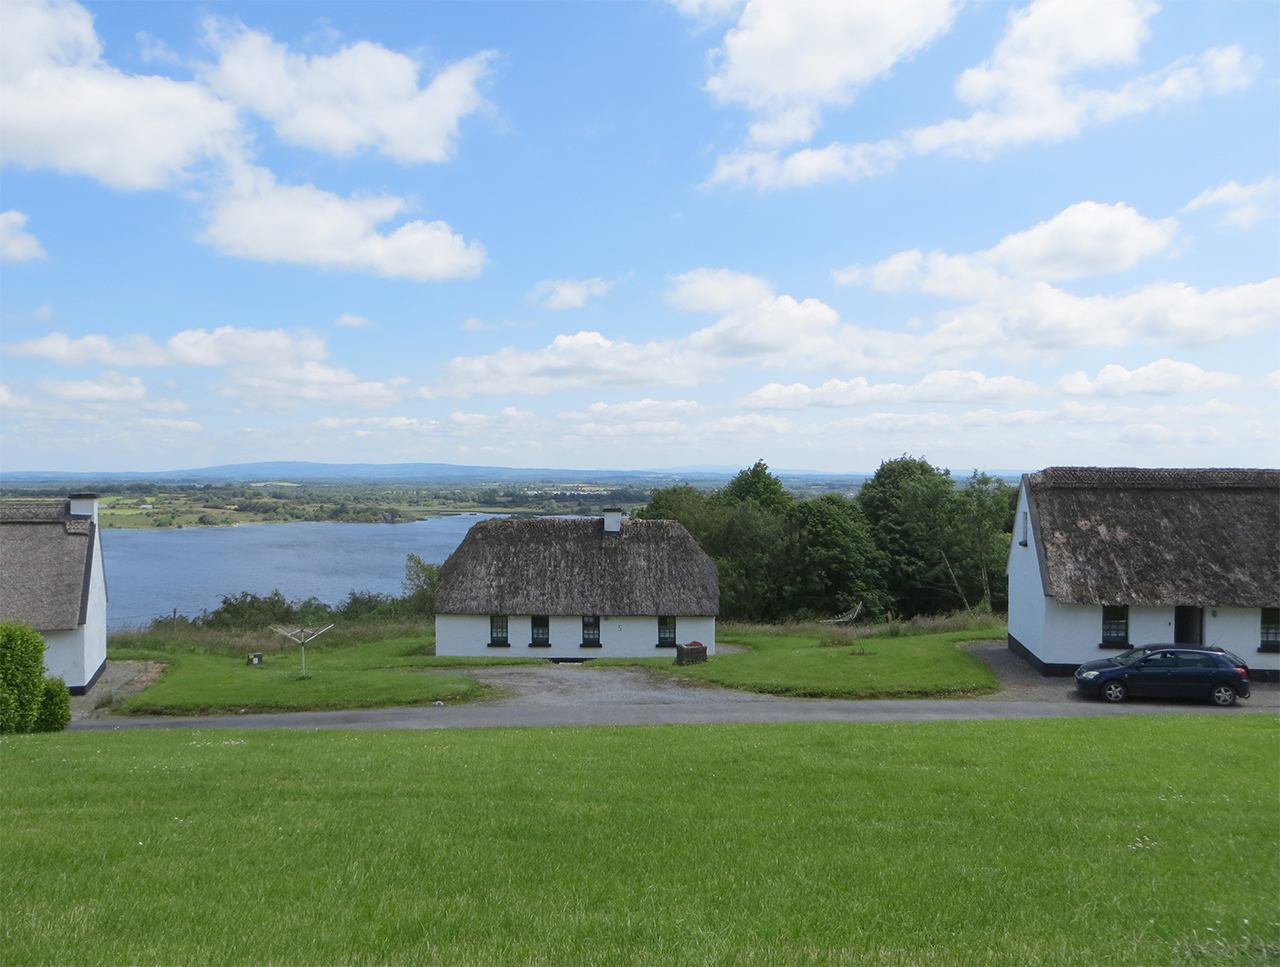 Corofin Cottages and Lake Inchiquin